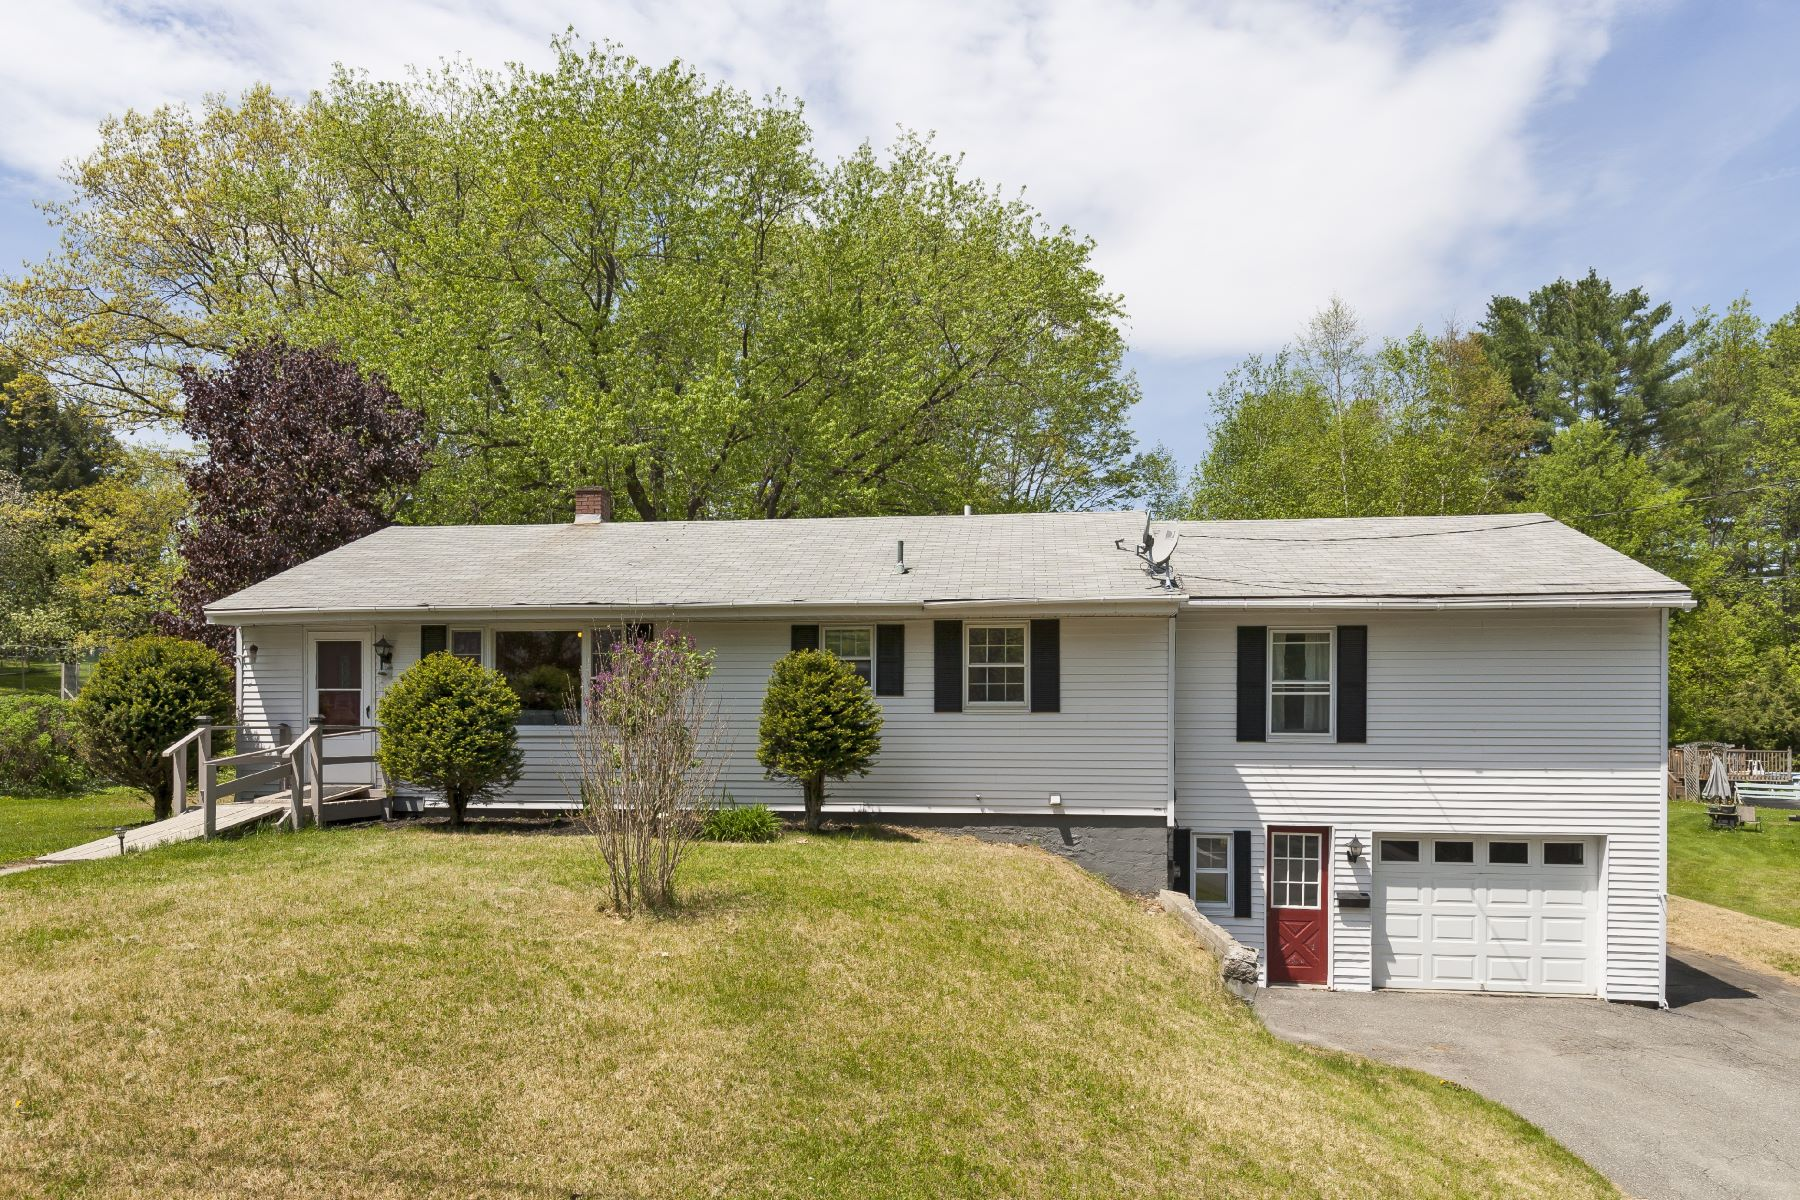 Single Family Home for Sale at Four bedroom Ranch in great location 15 Whitcomb Ave Lebanon, New Hampshire, 03784 United States